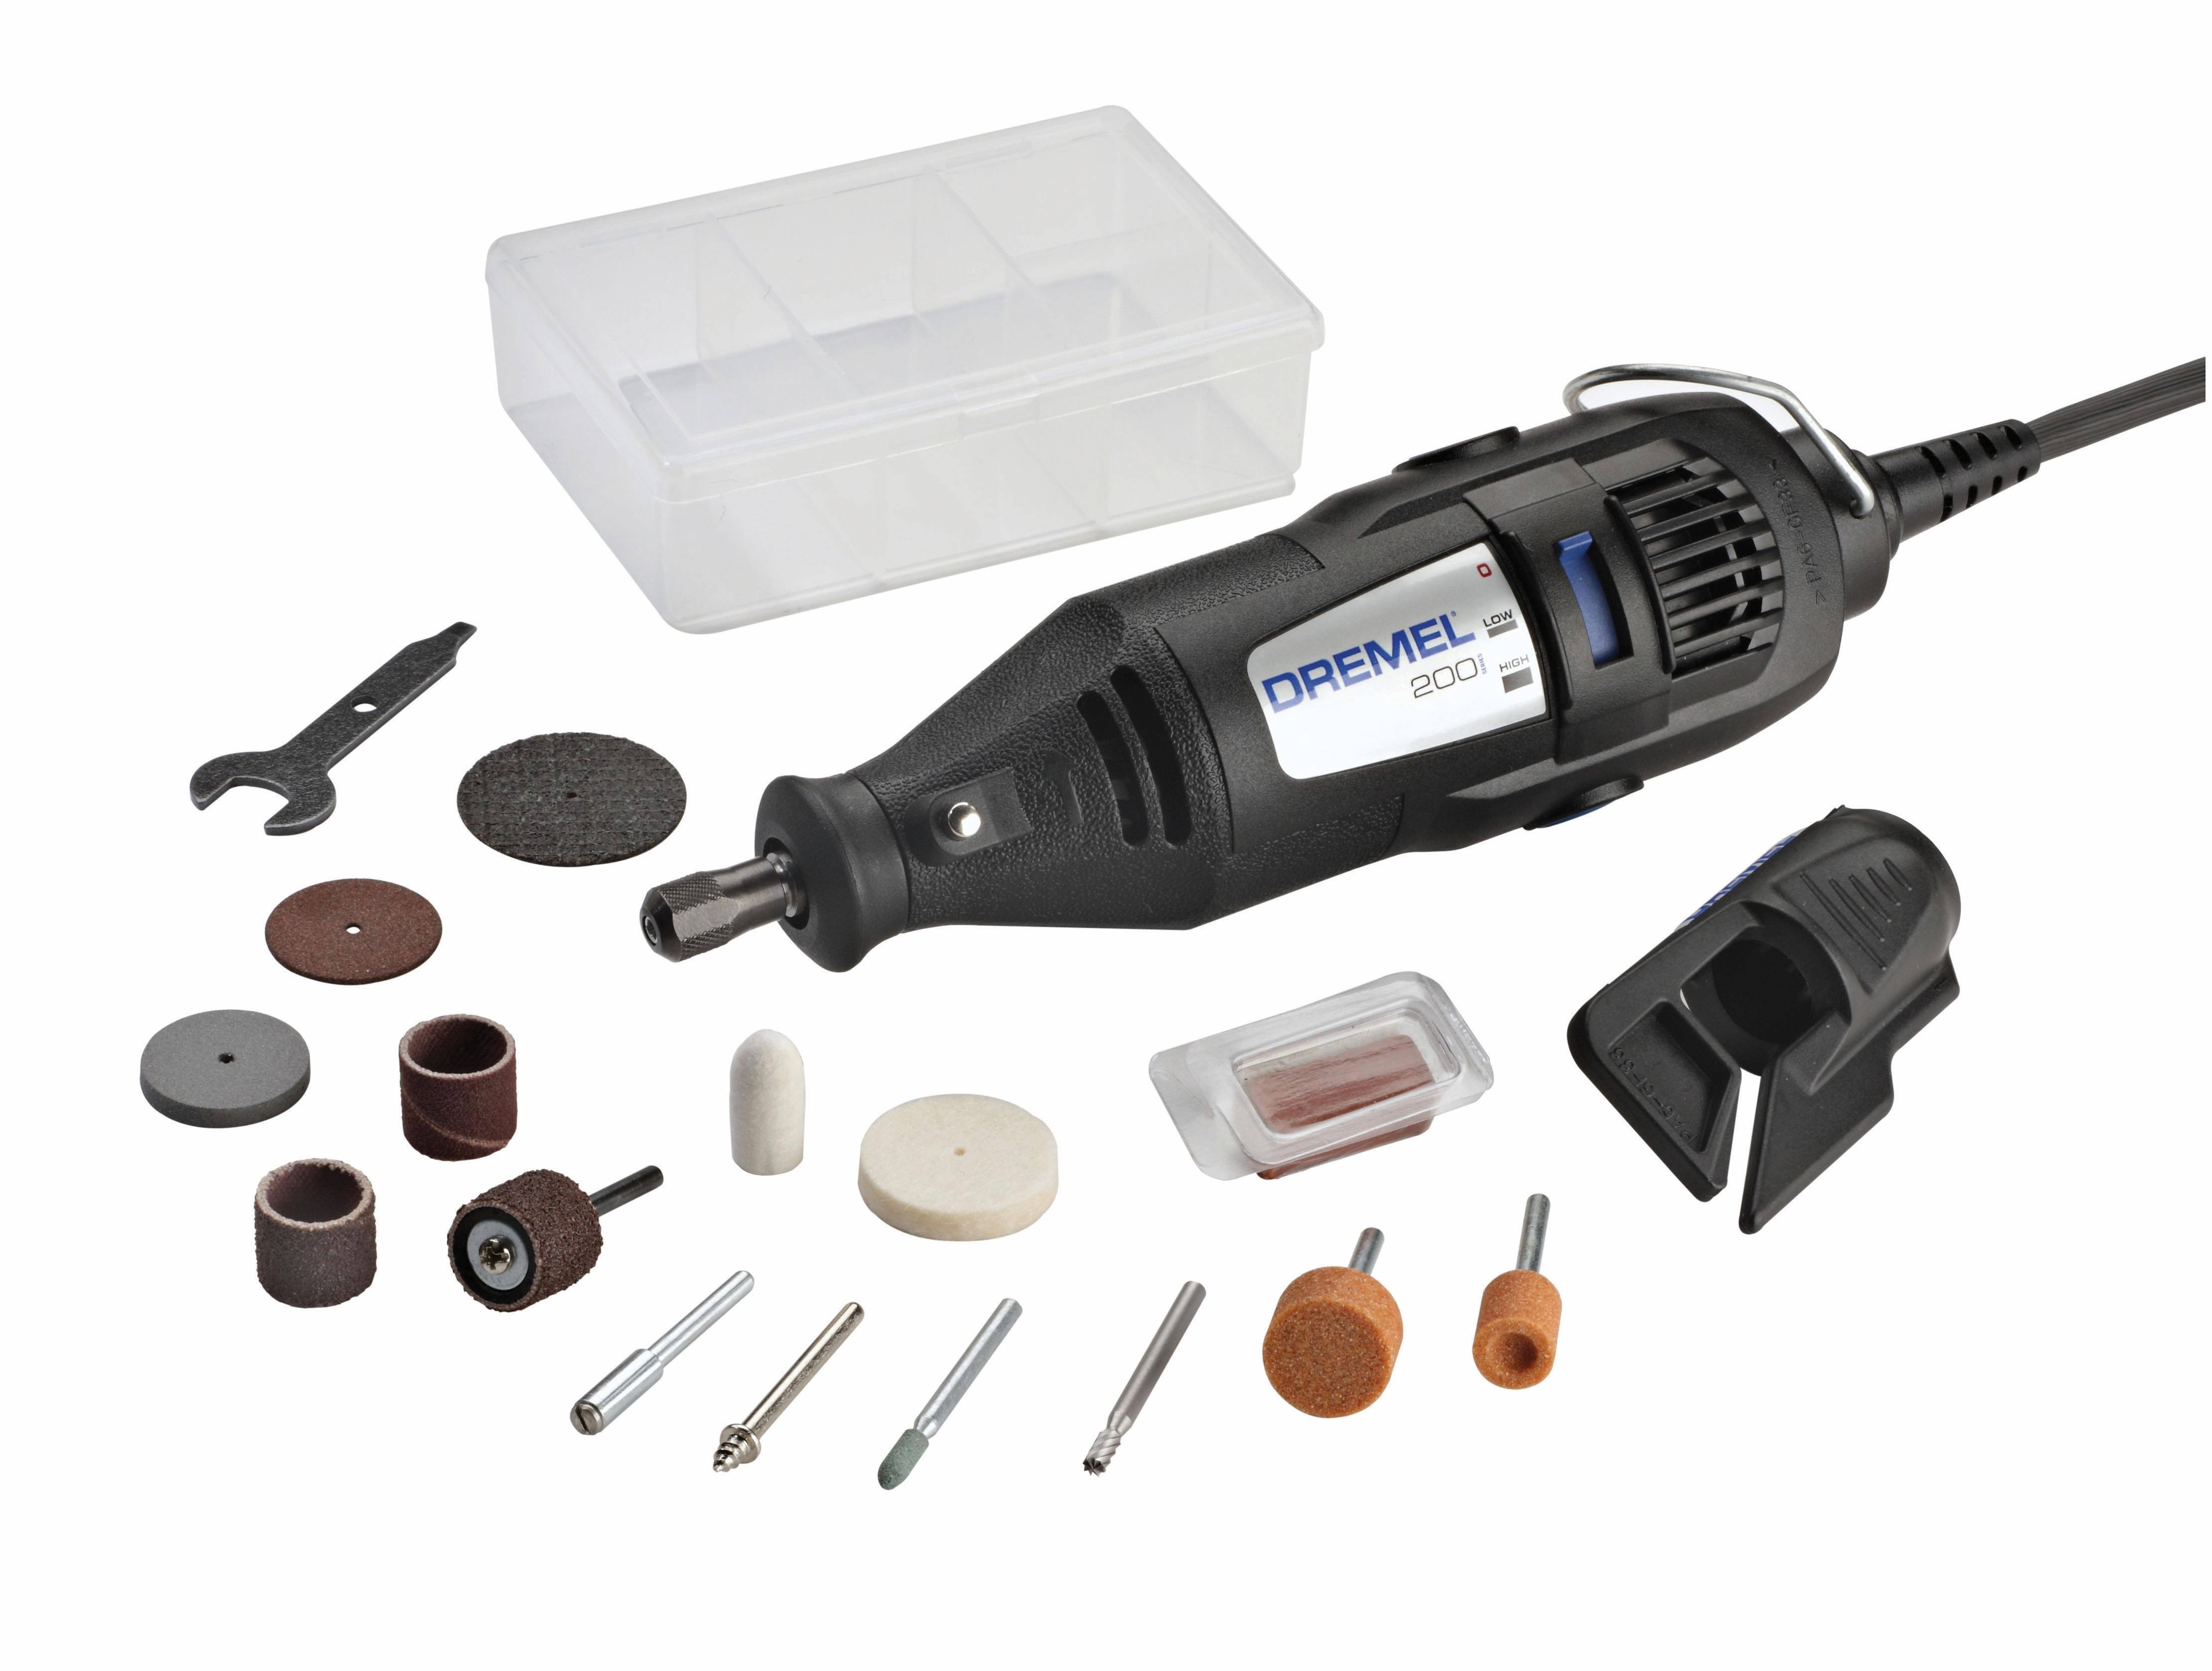 Dremel 2-Speed Corded Rotary Tool Kit - 1.15amp